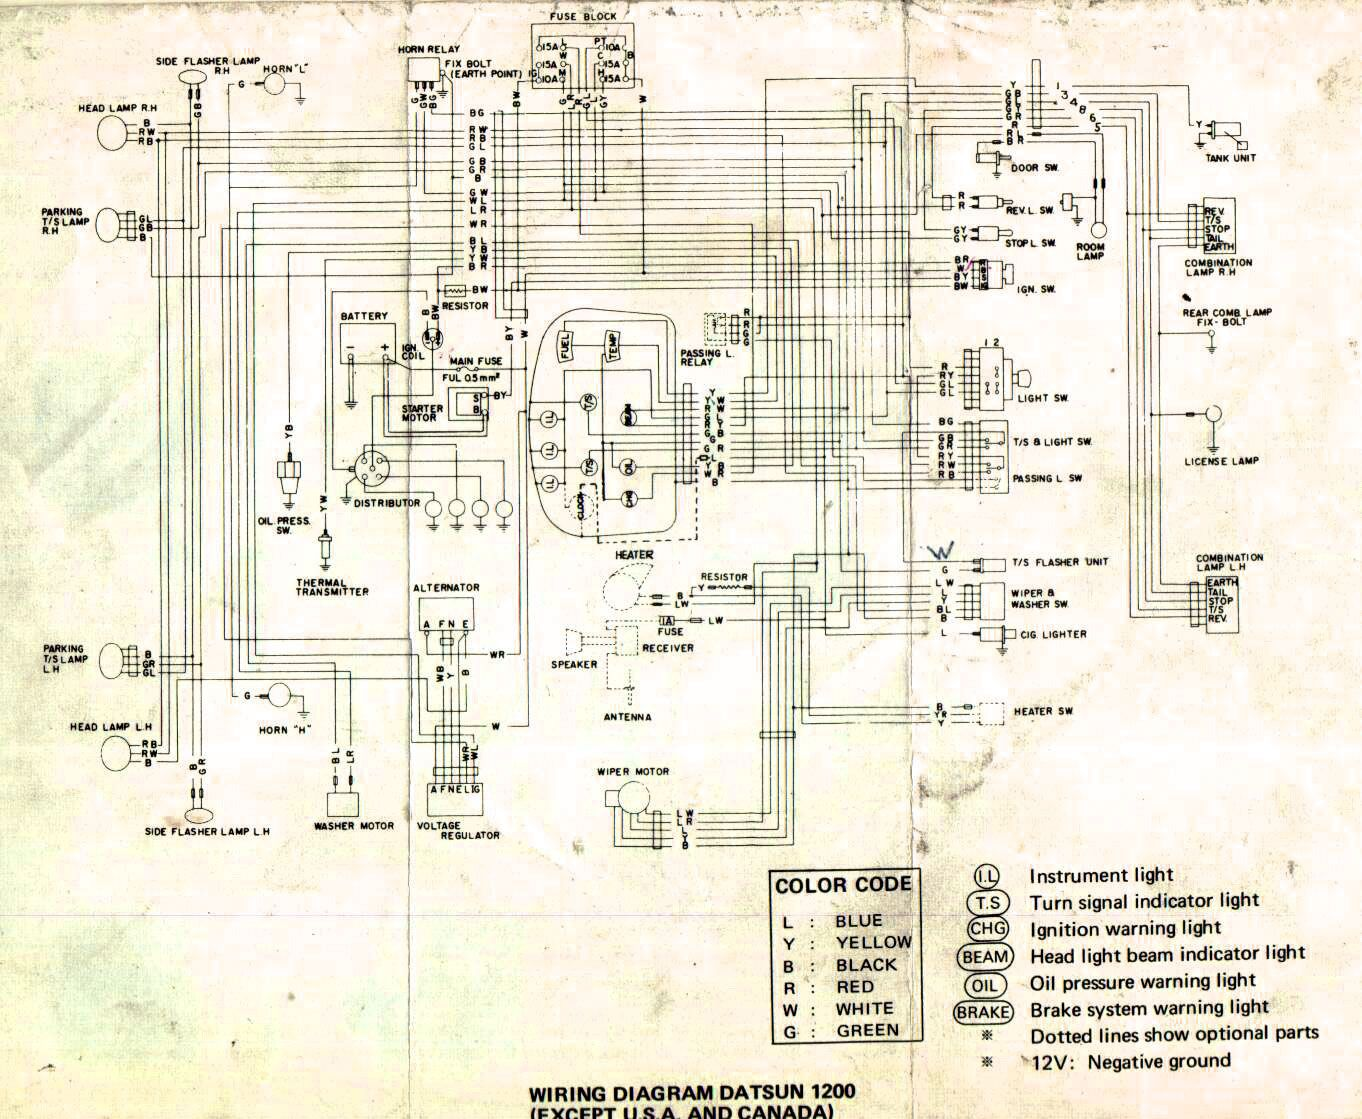 Nissan Pickup Truck Wiring Diagrams Electric | Wiring Diagram on 1991 nissan maxima wiring diagram, 1991 nissan pickup engine diagram, 1991 nissan hardbody alternator diagram,